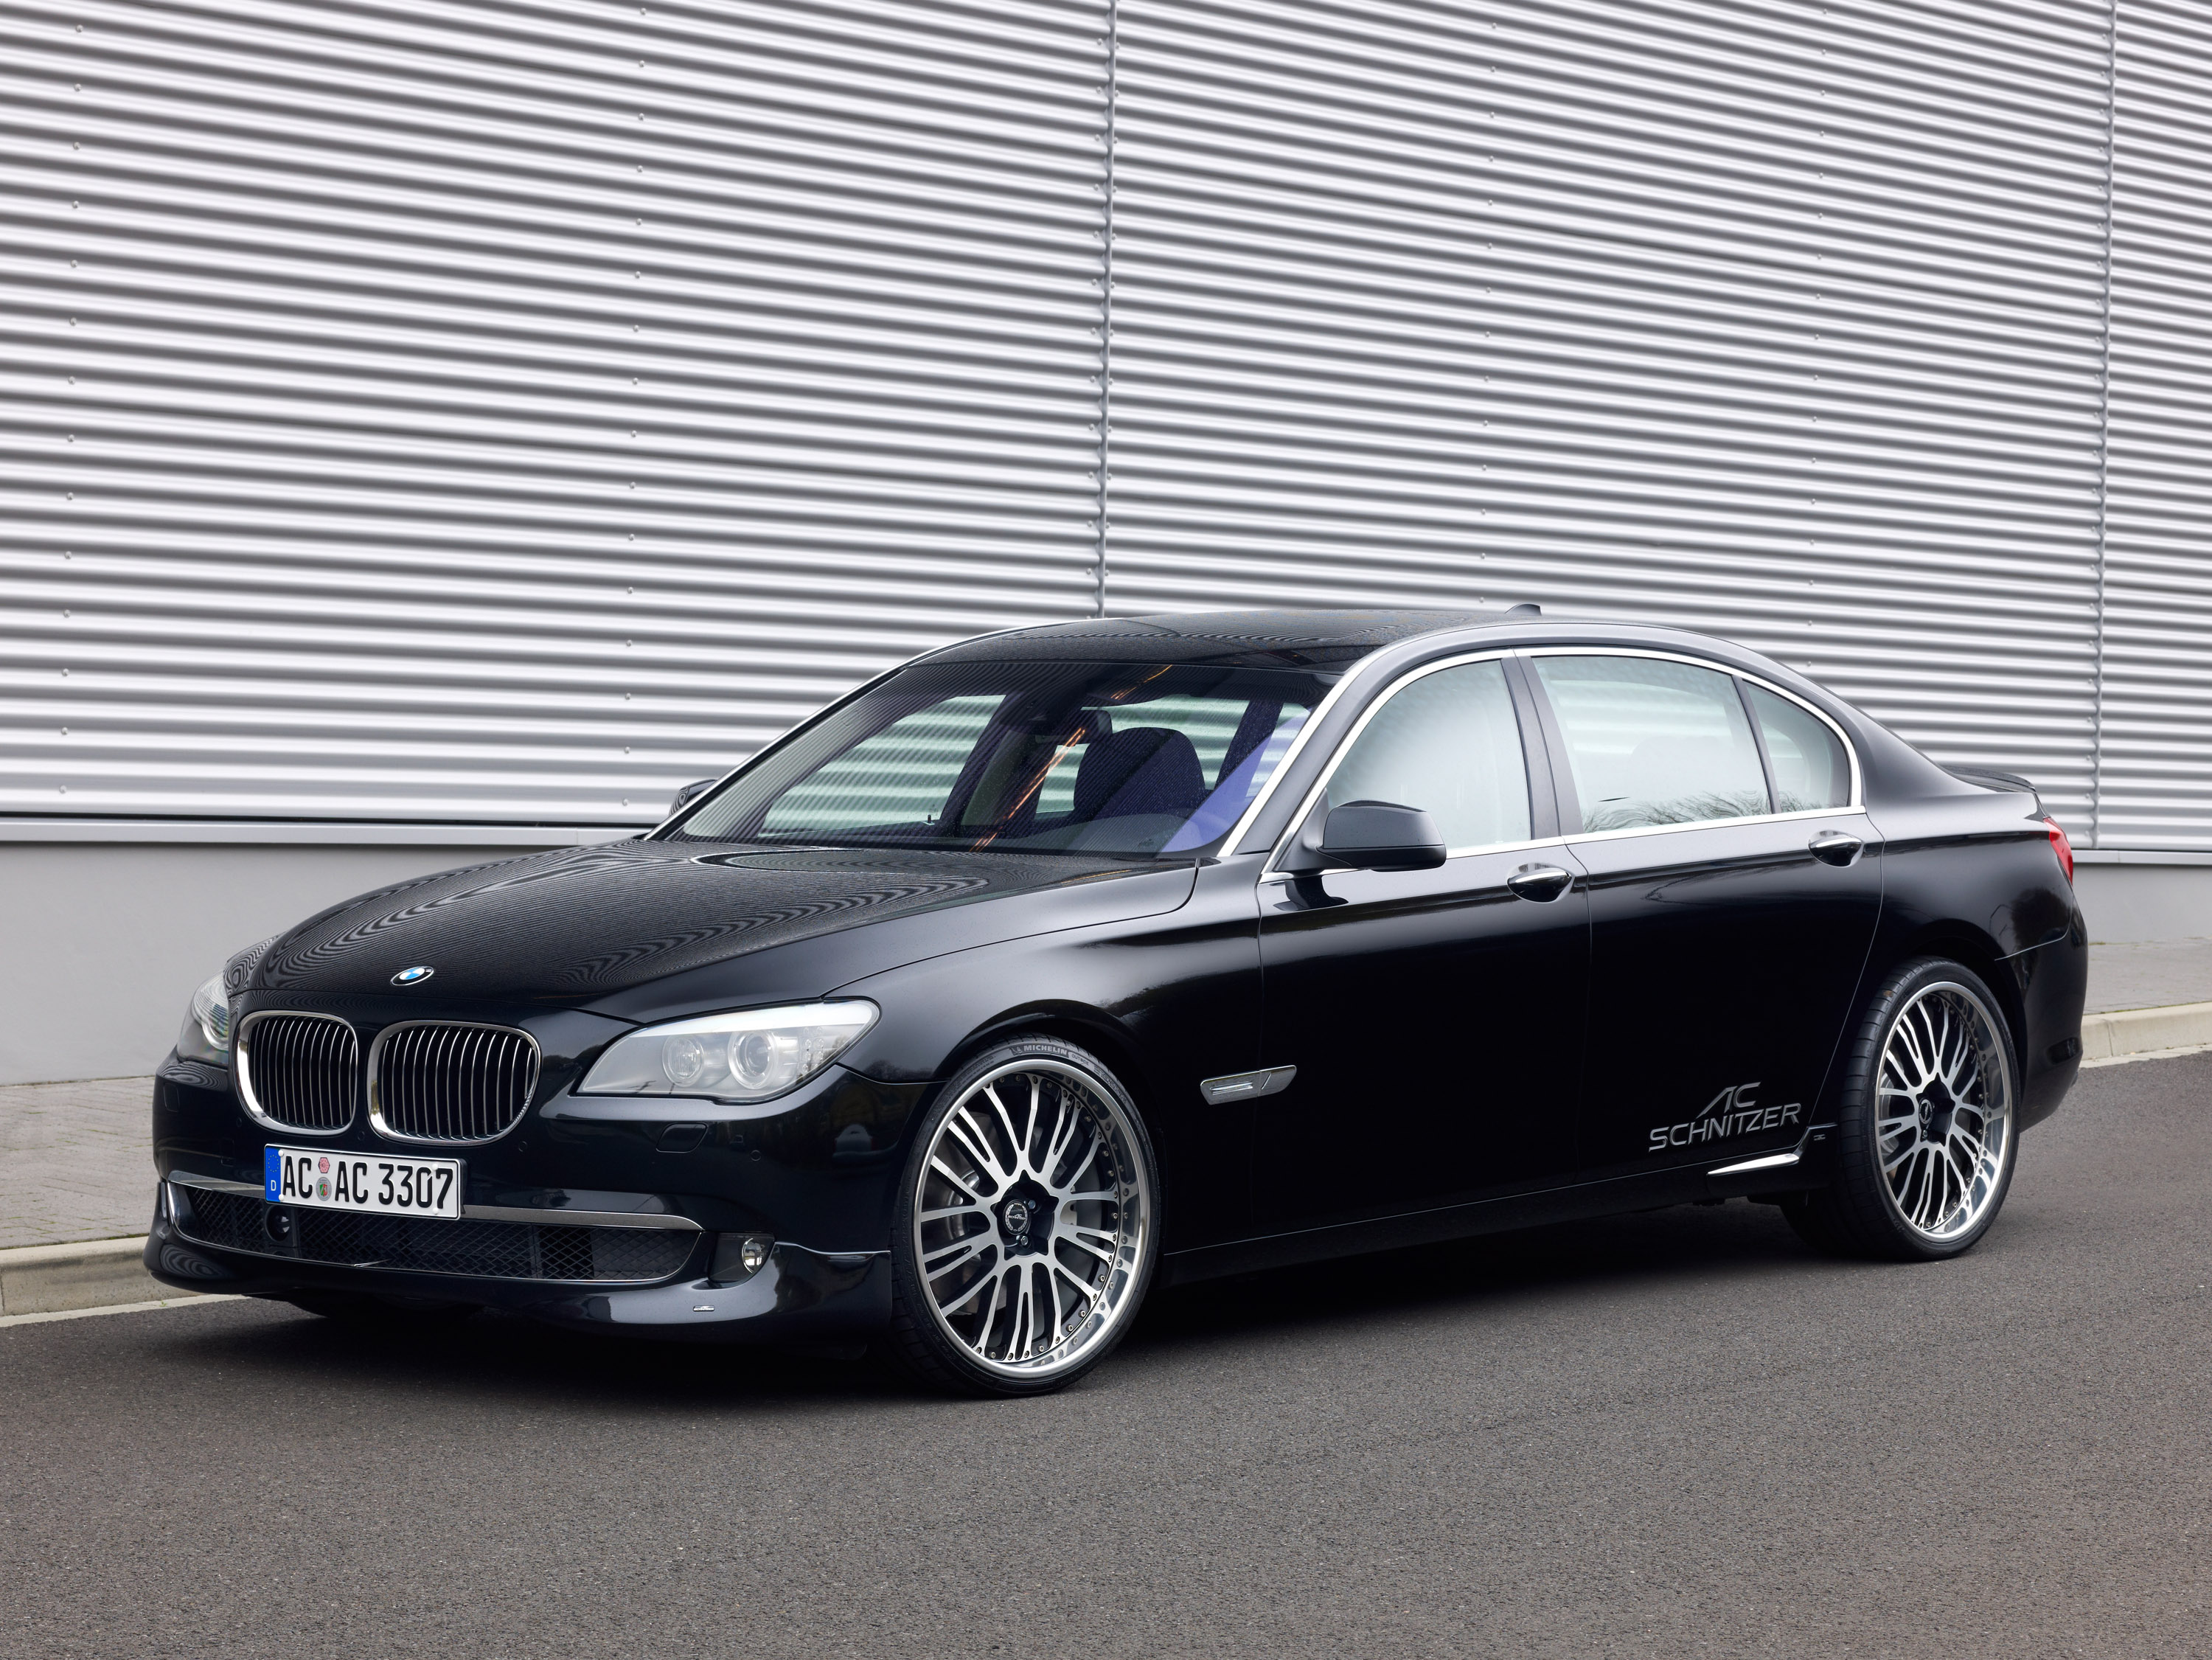 F02 BMW 7 series Msport in Titanium Silver Simply awesome